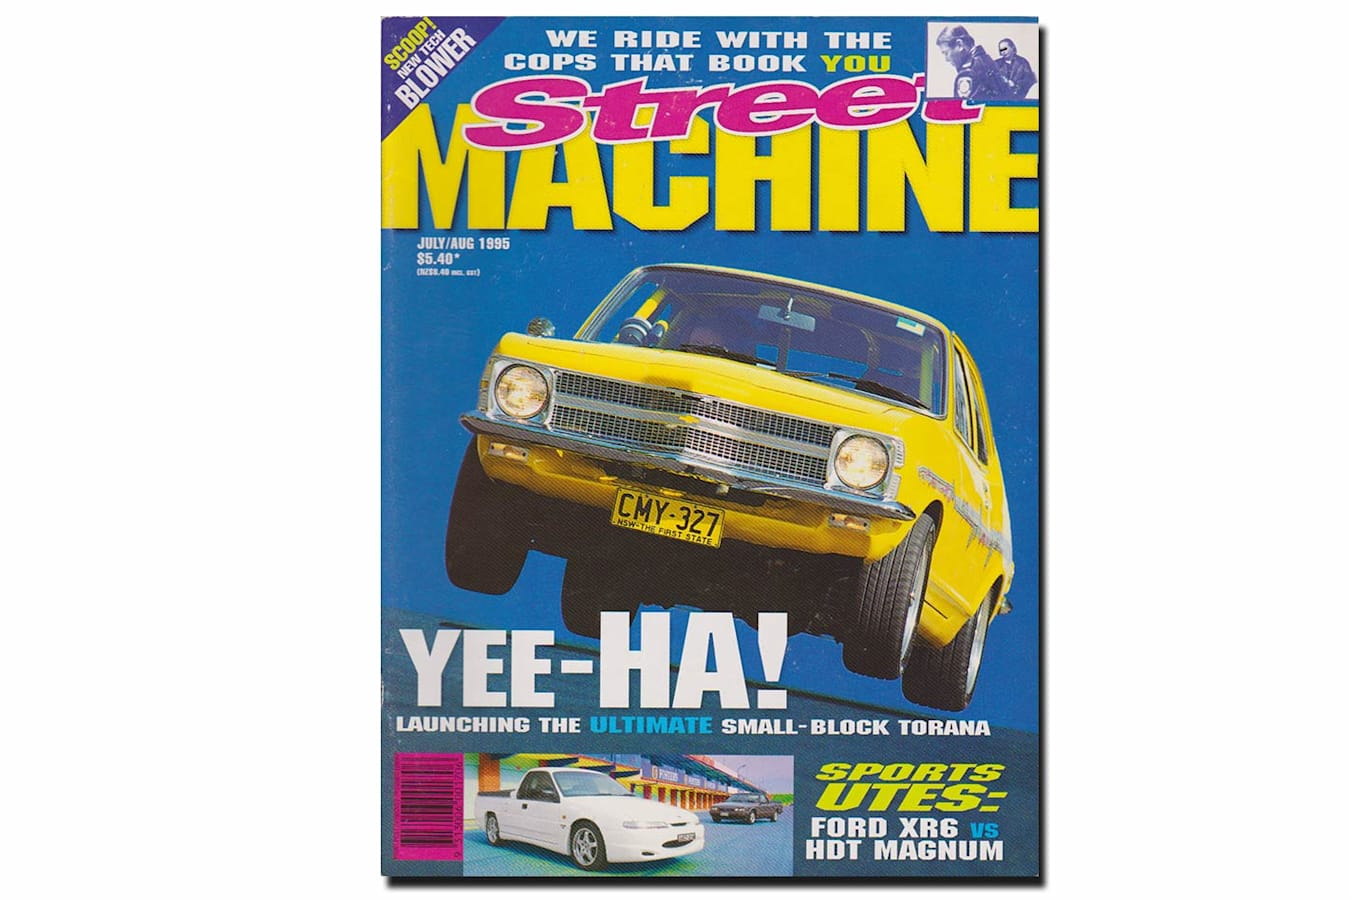 July August 1995 Street Machine cover